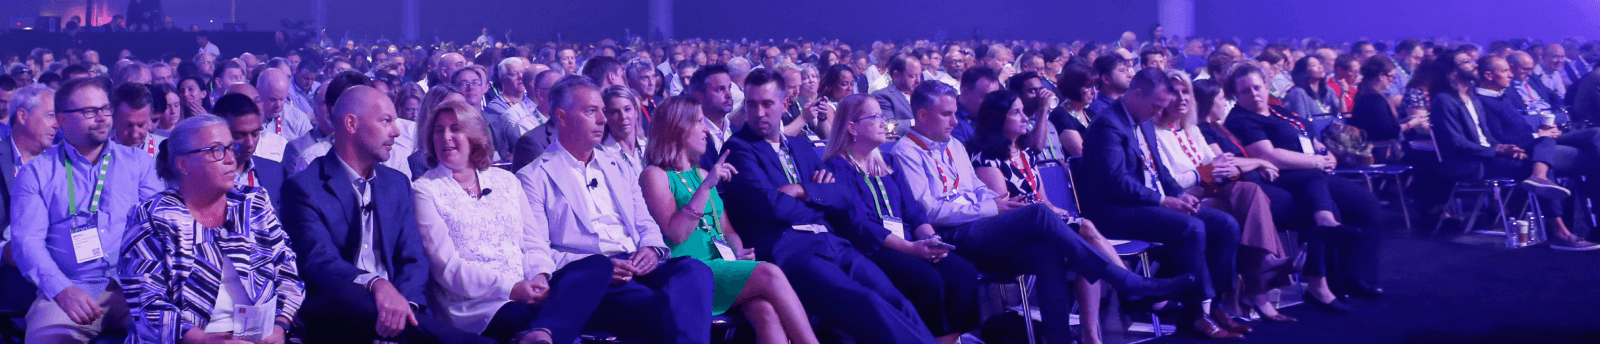 Inforum attendees at the general session with Infor executives